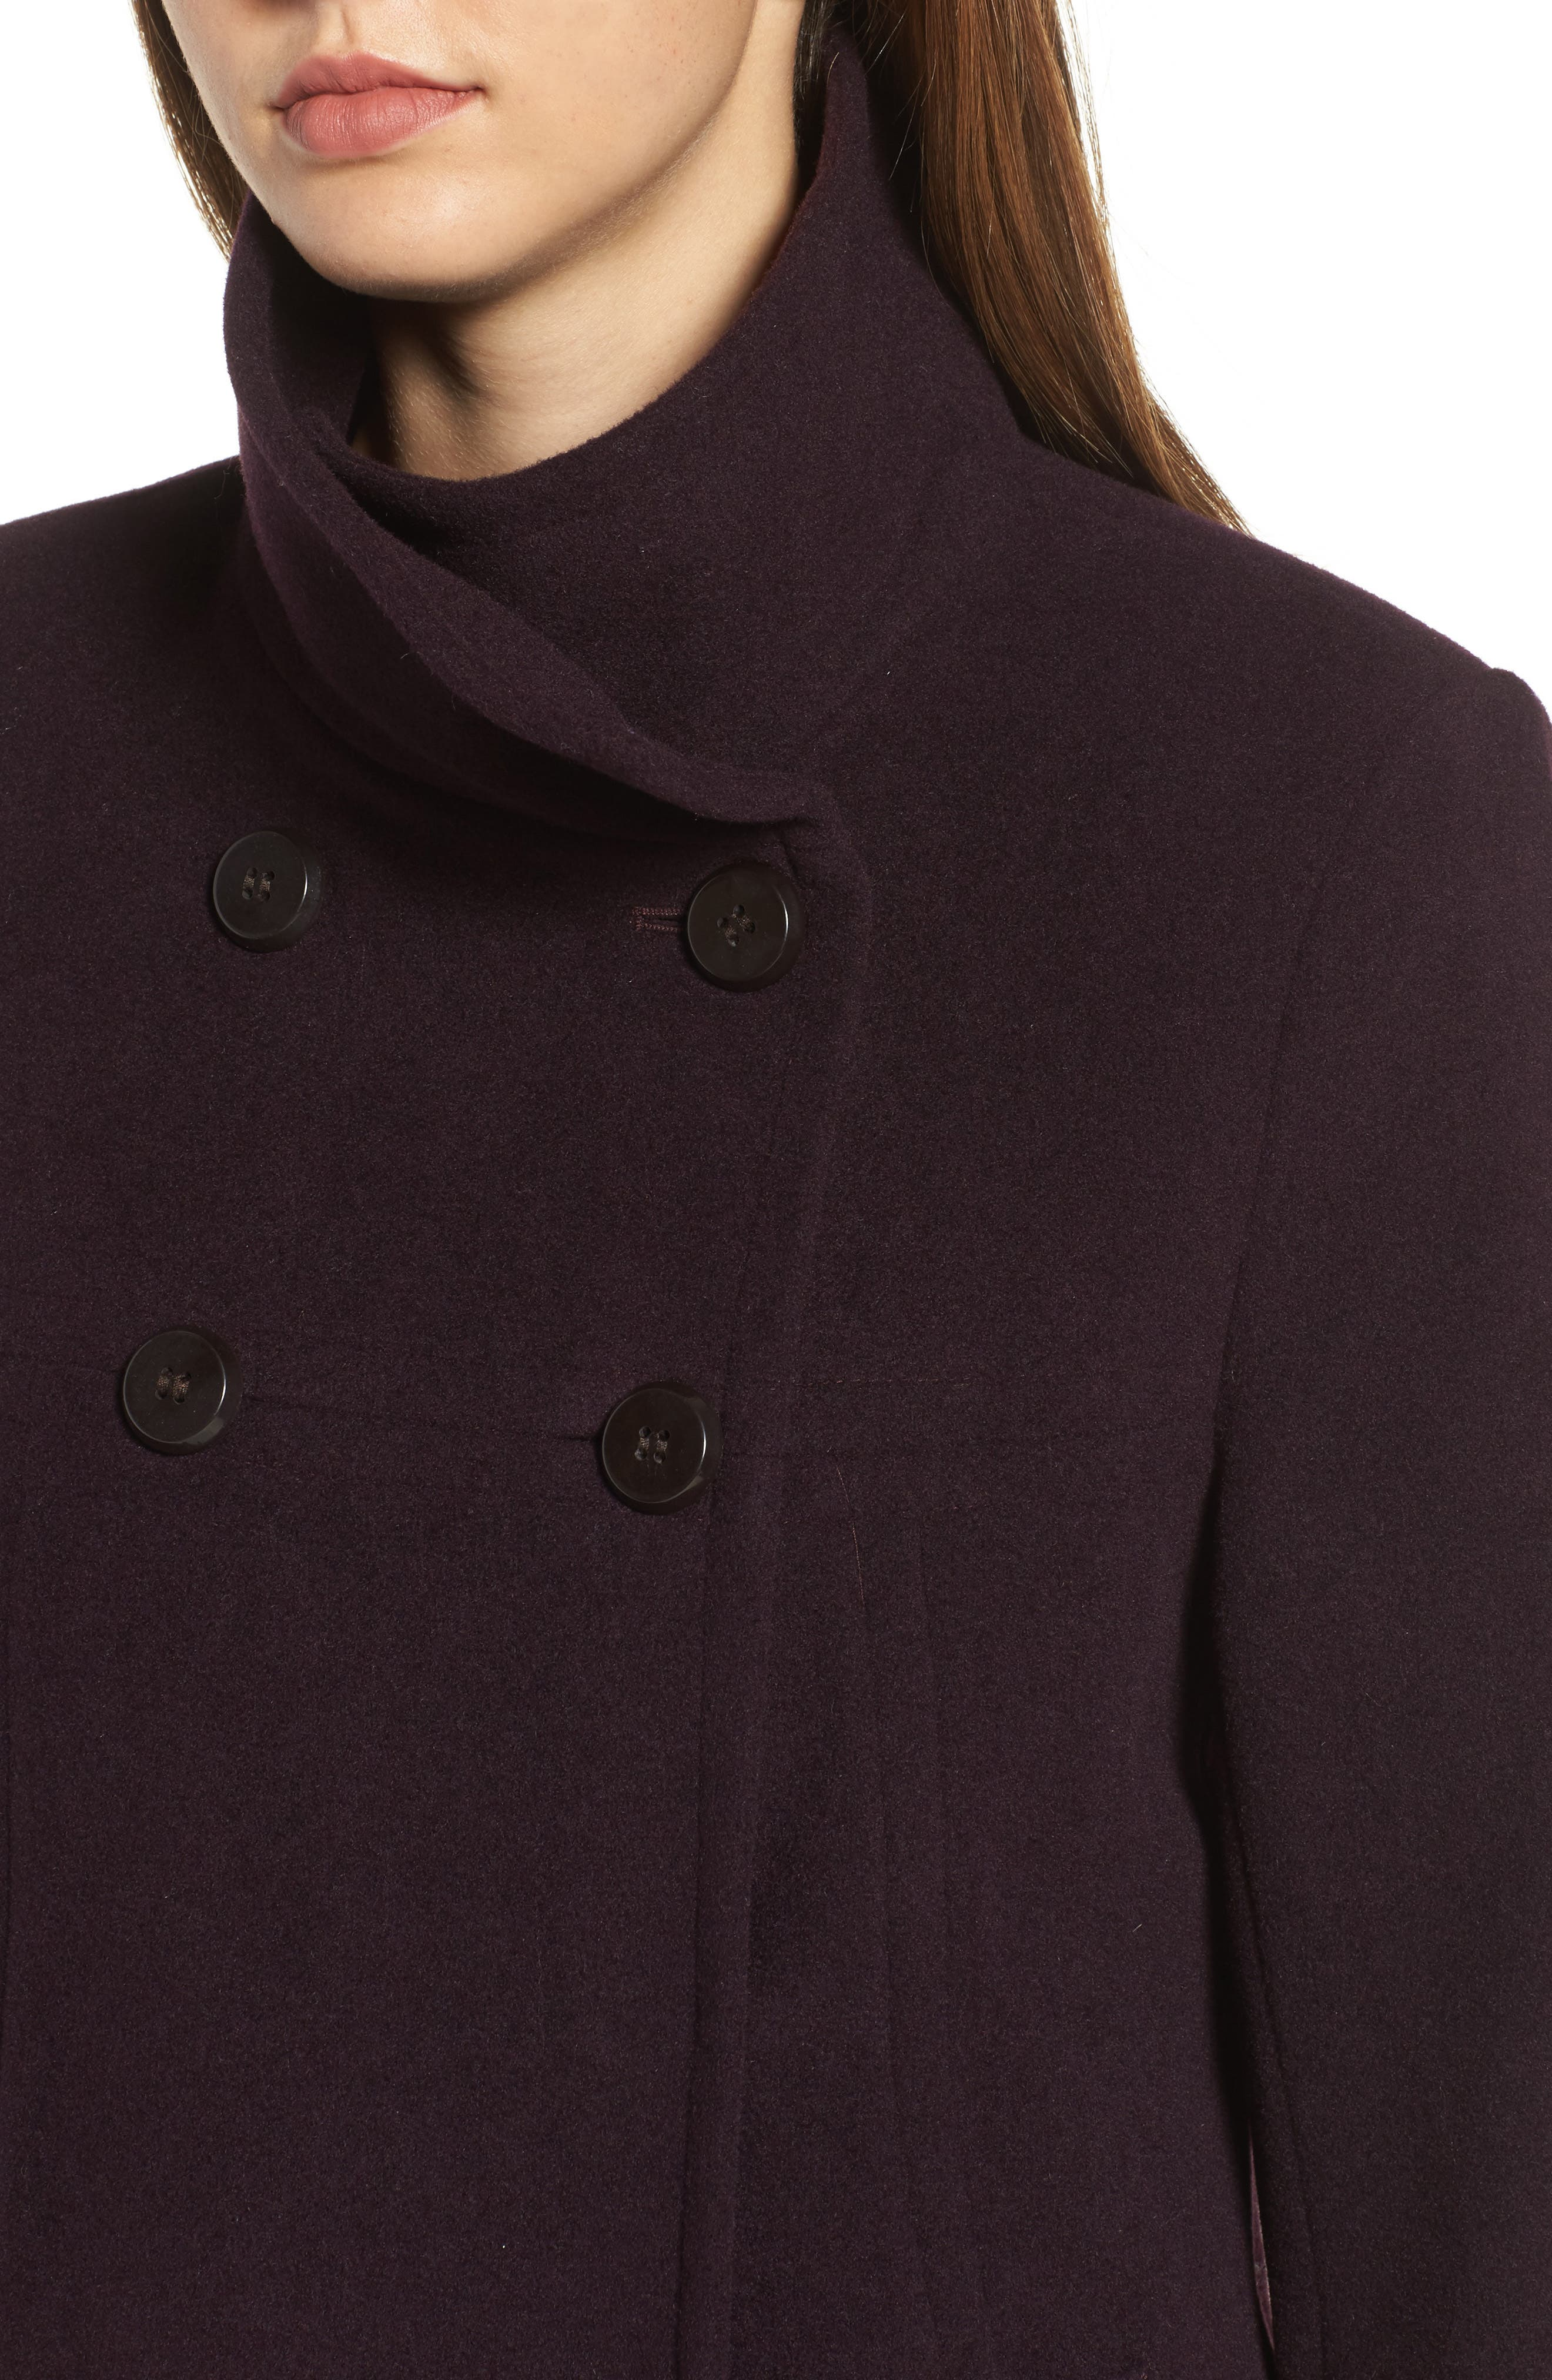 Double Breasted Coat,                             Alternate thumbnail 15, color,